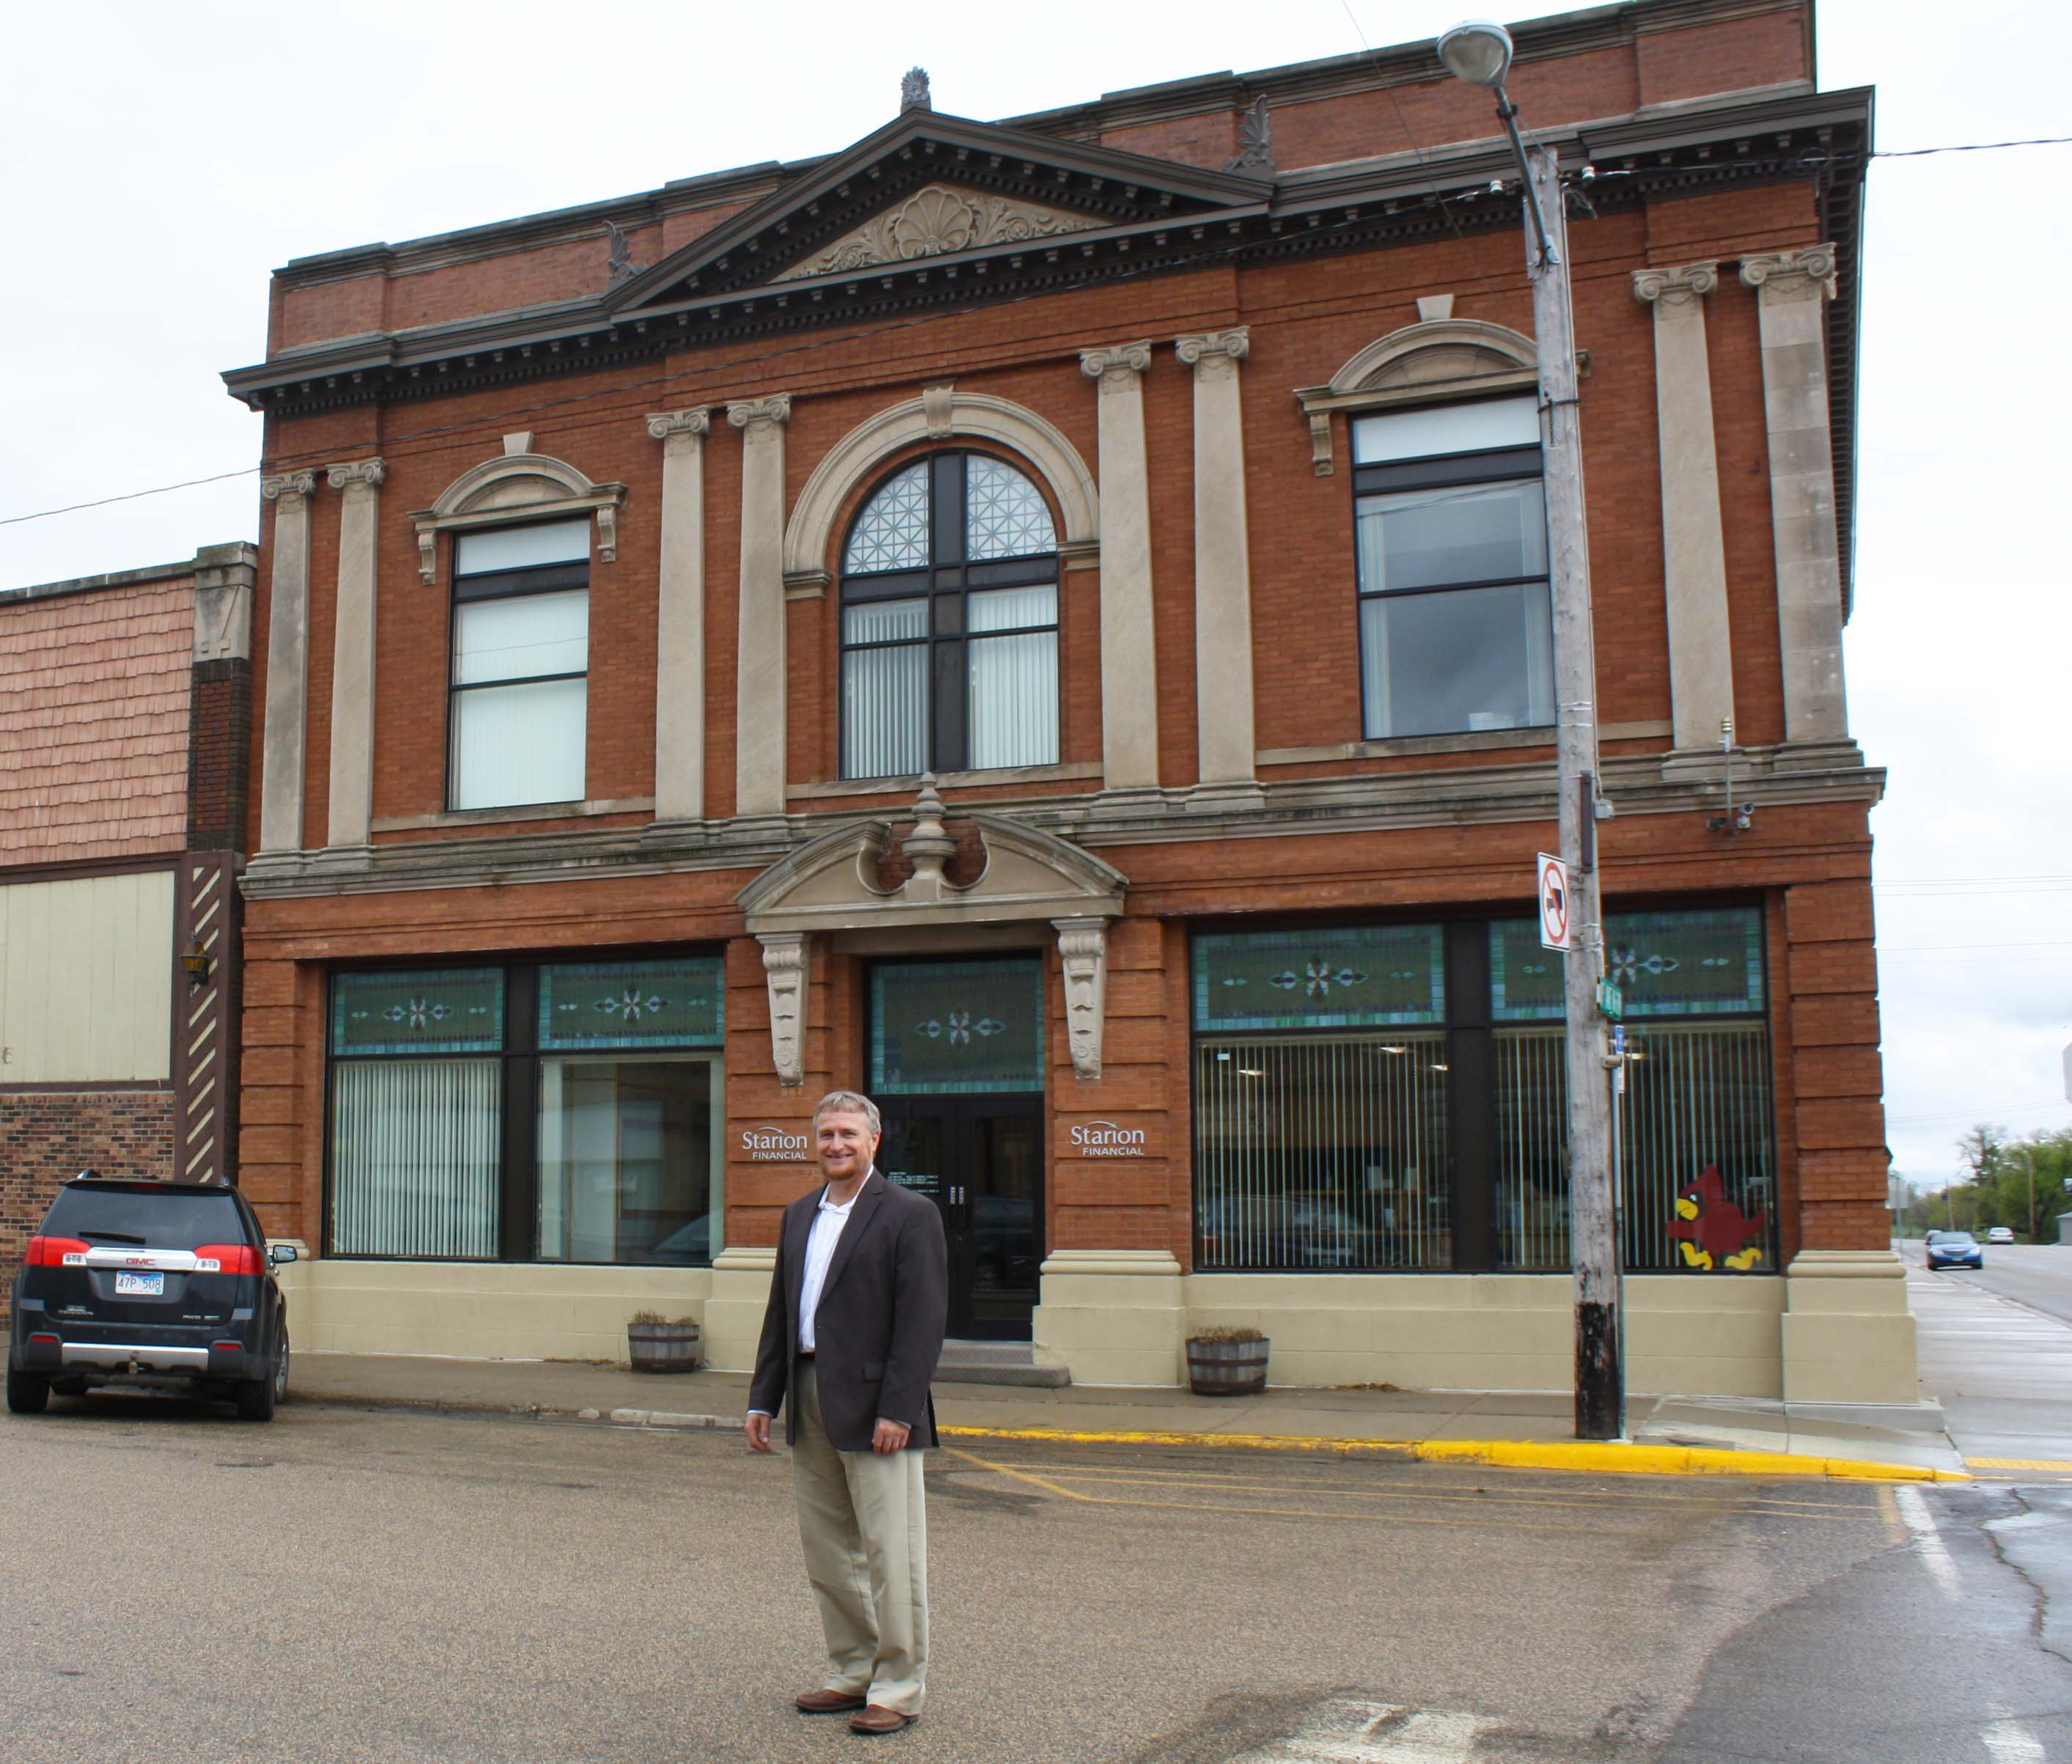 Aaron Tschosik of Starion Financial said Ellendale is an easy place to start a business.